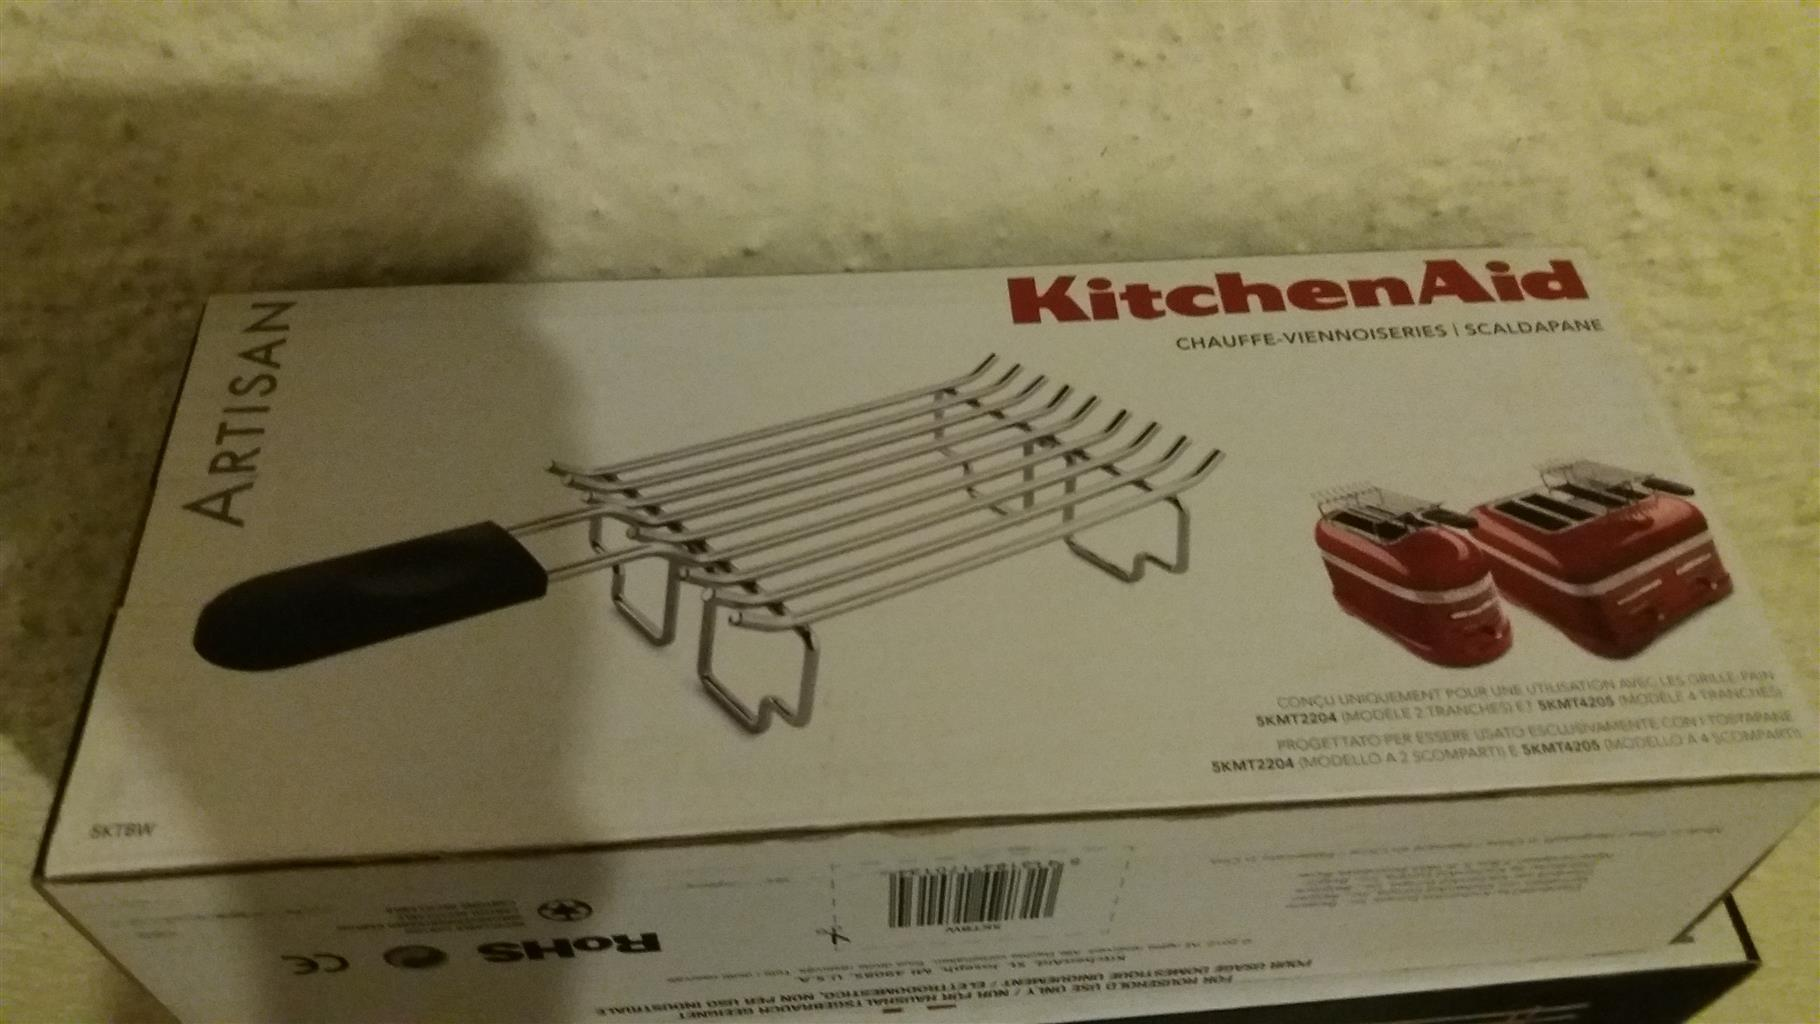 BRAND NEW KITCHEN AID ACCESSORIES AT 25% OF RETAIL